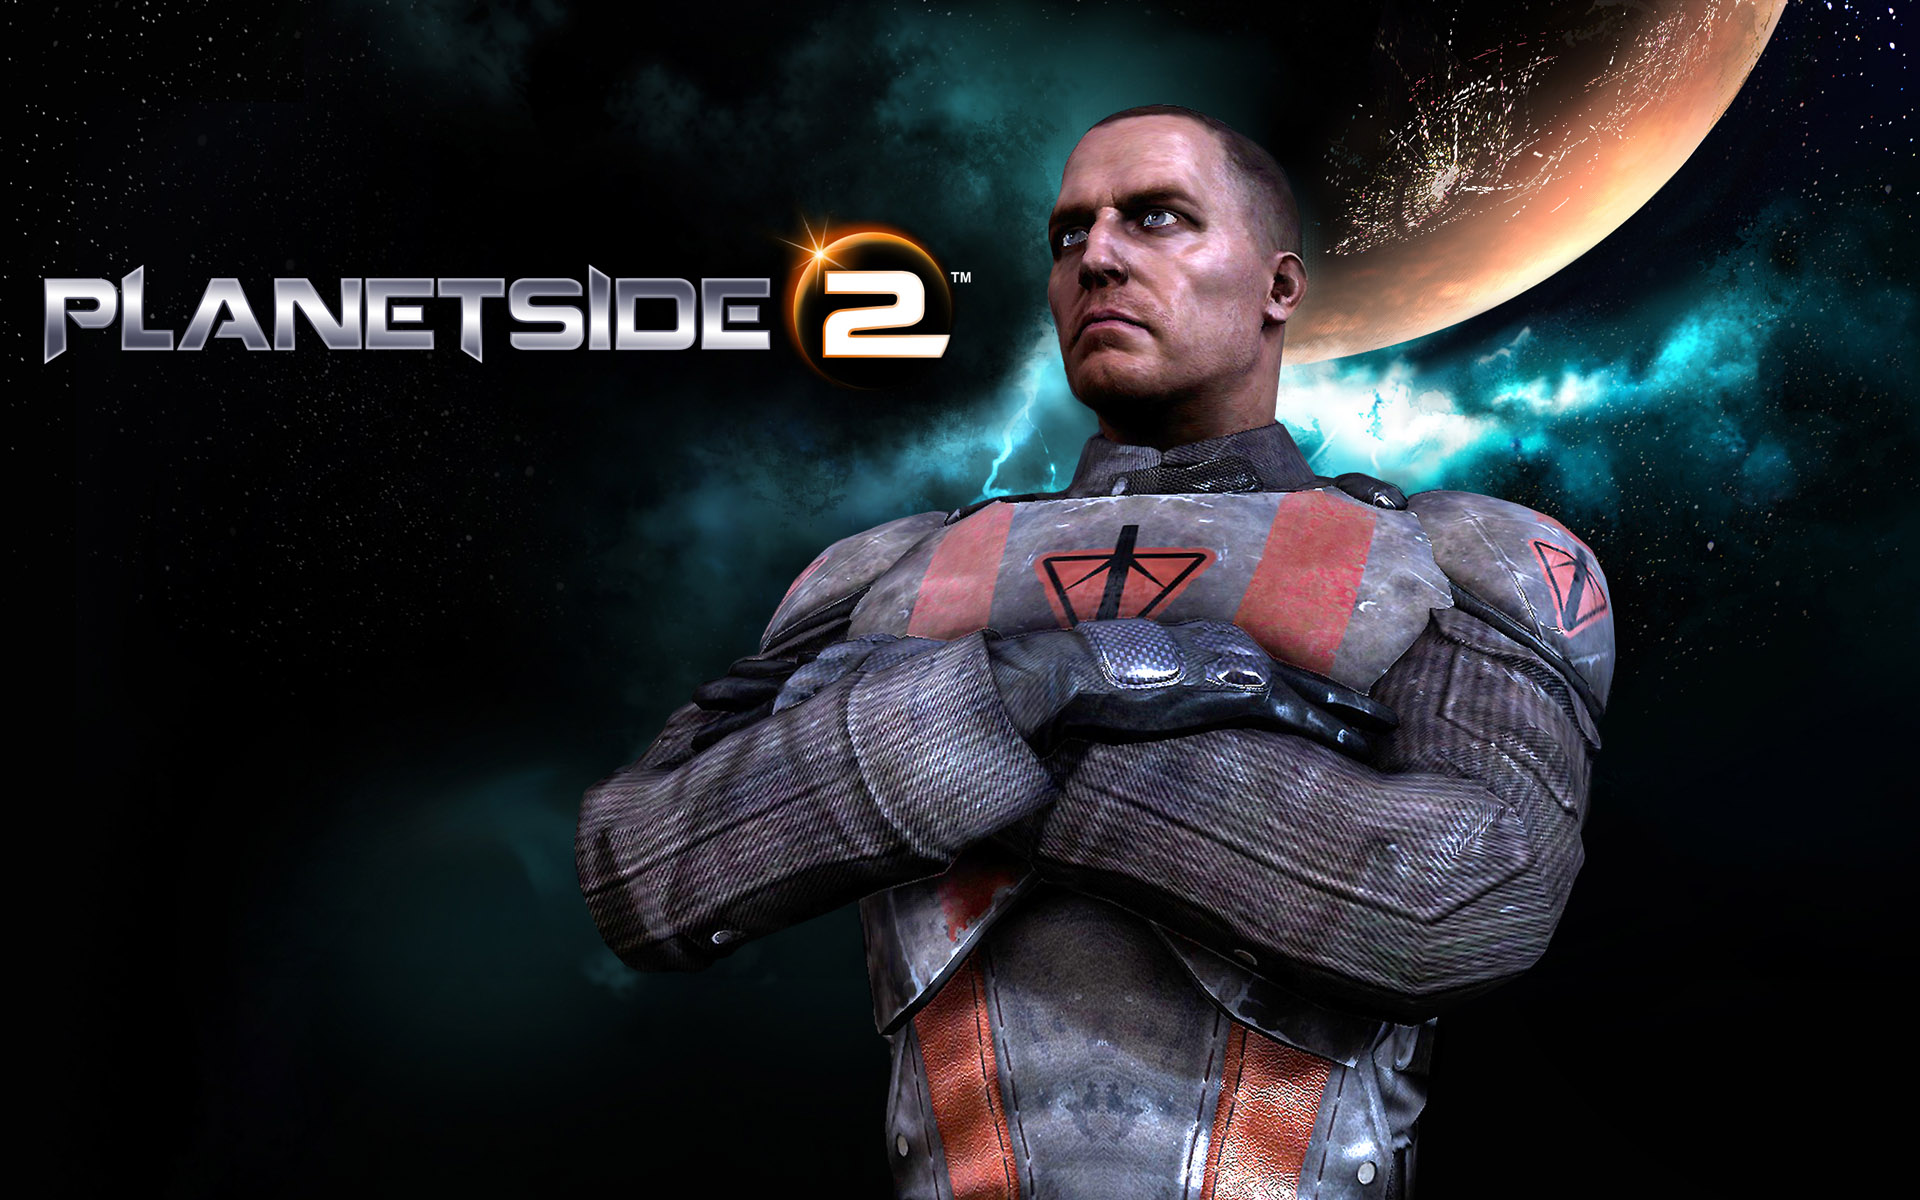 Planetside 2 Wallpapers | Best Wallpapers